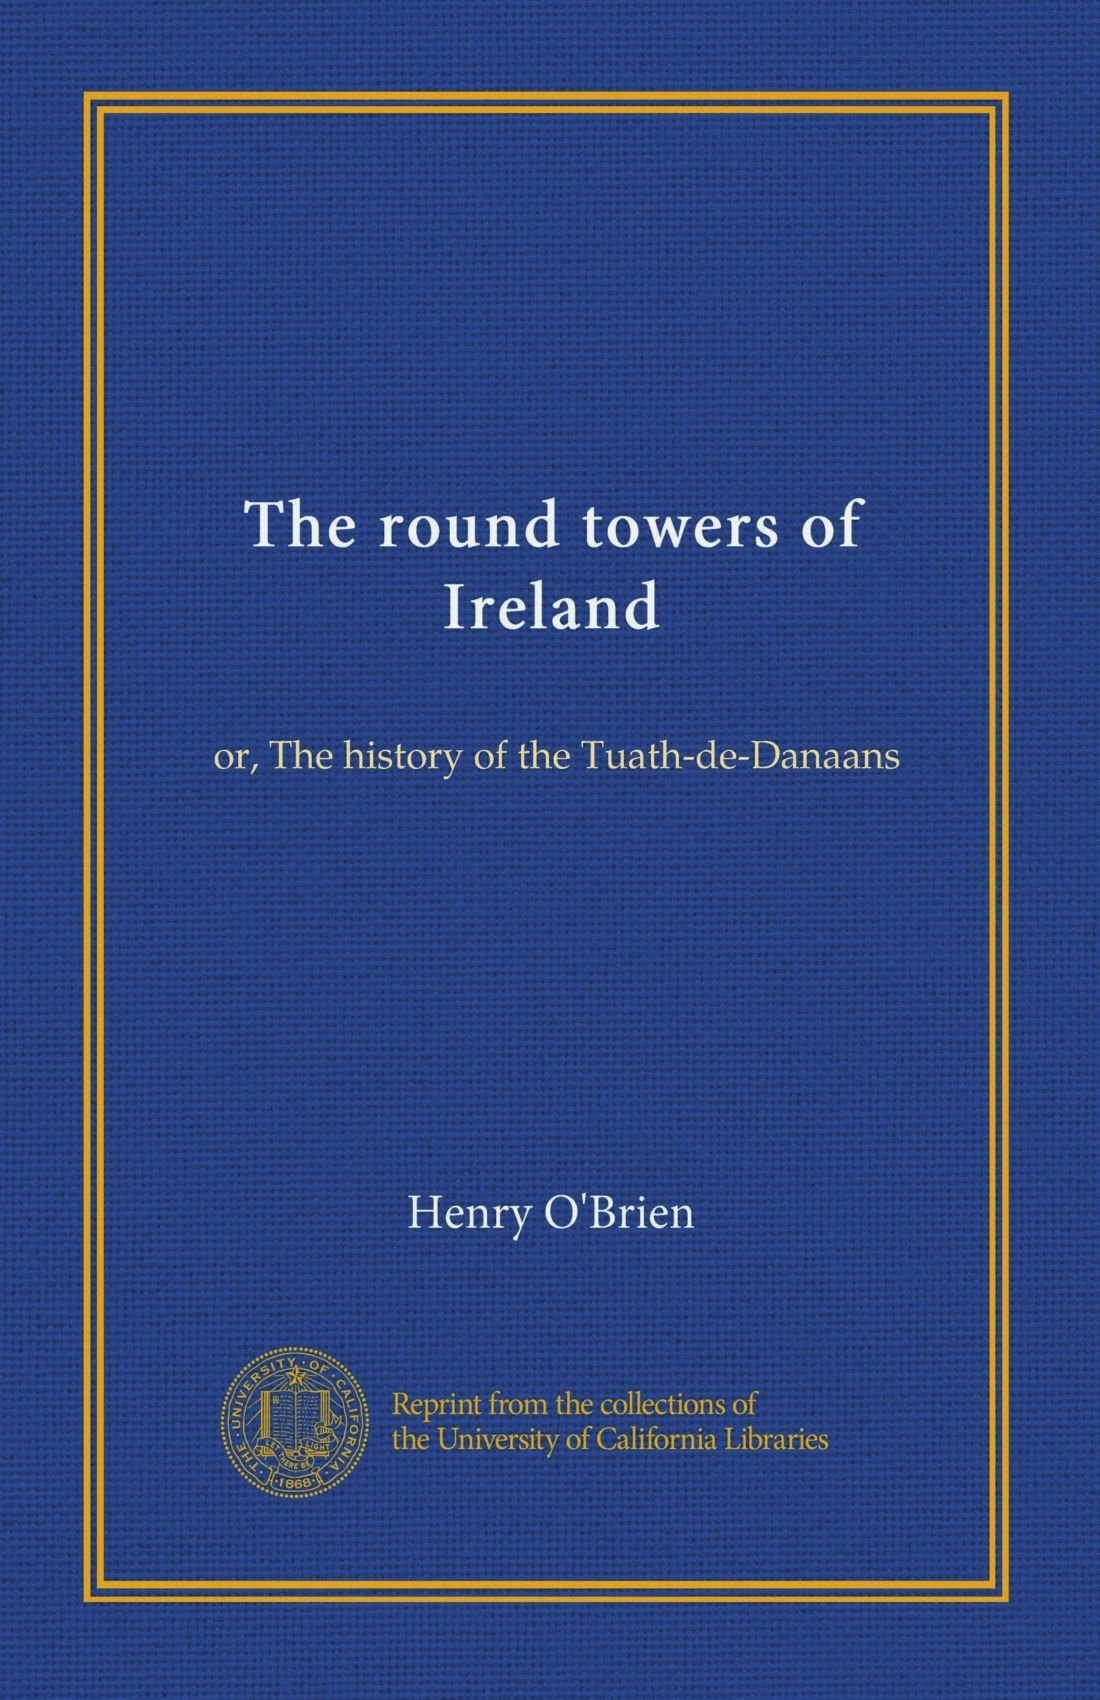 The round towers of Ireland: or, The history of the Tuath-de-Danaans